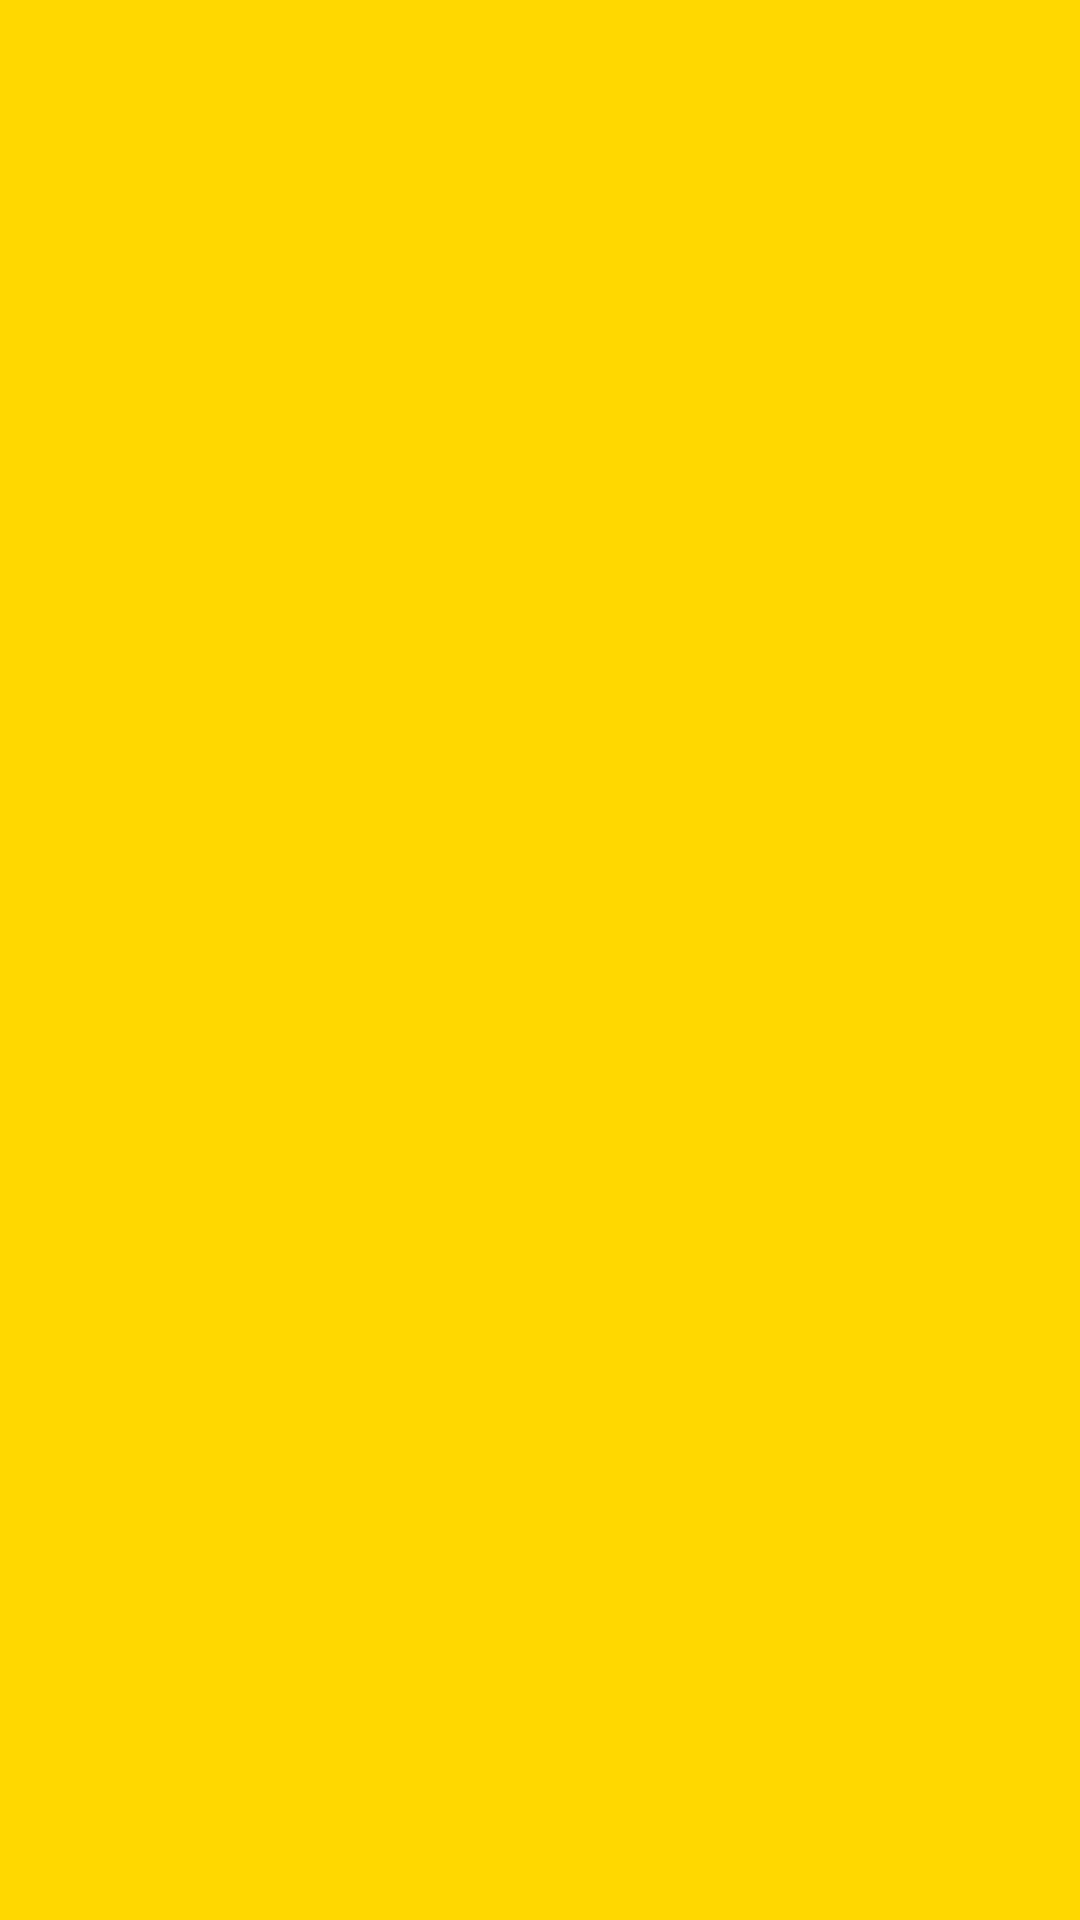 1080x1920 School Bus Yellow Solid Color Background